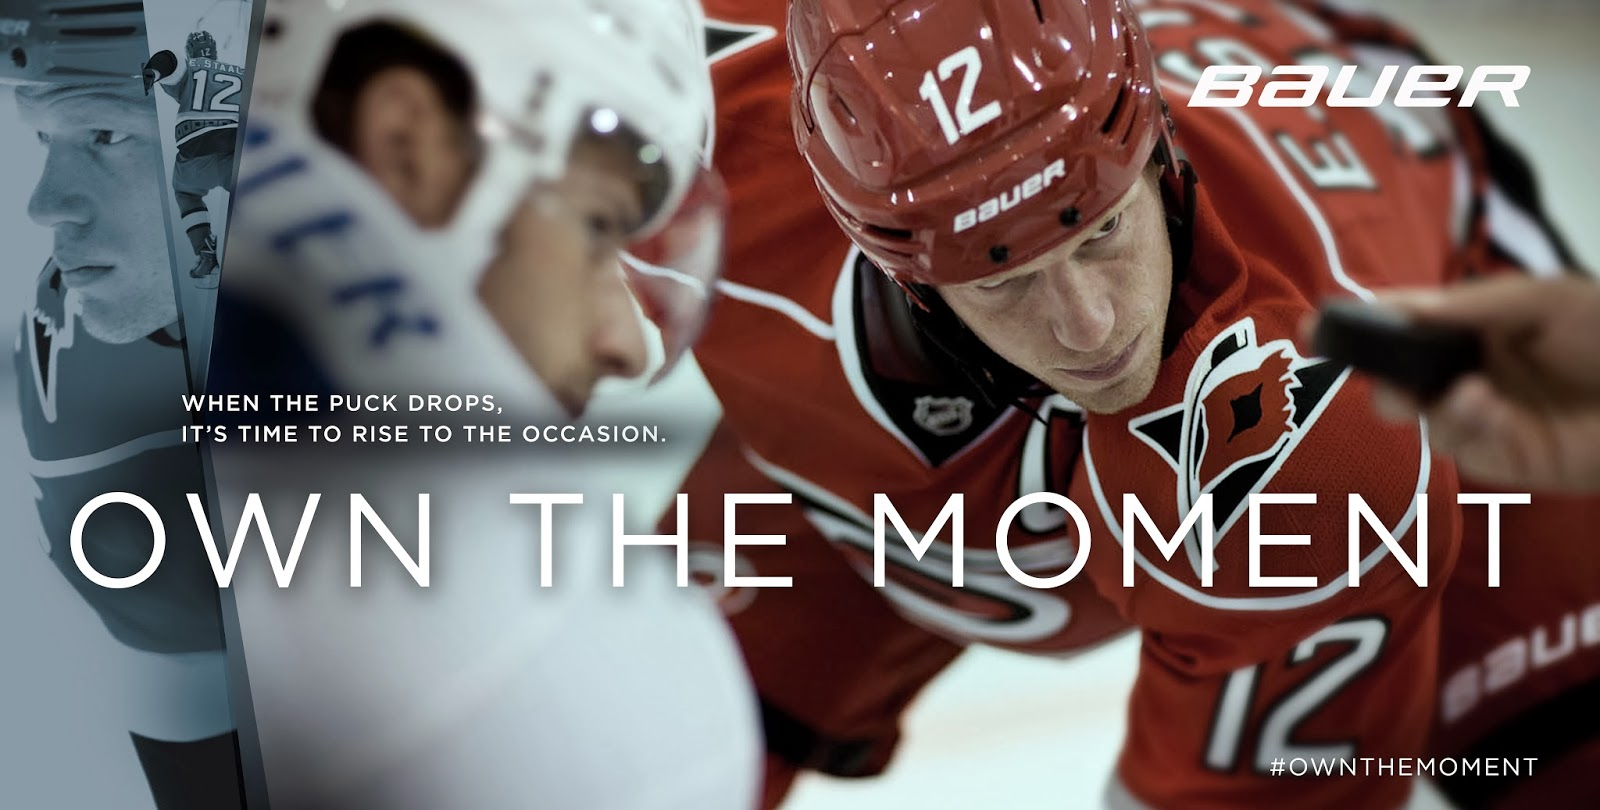 Bauer own the moment wallpaper kane